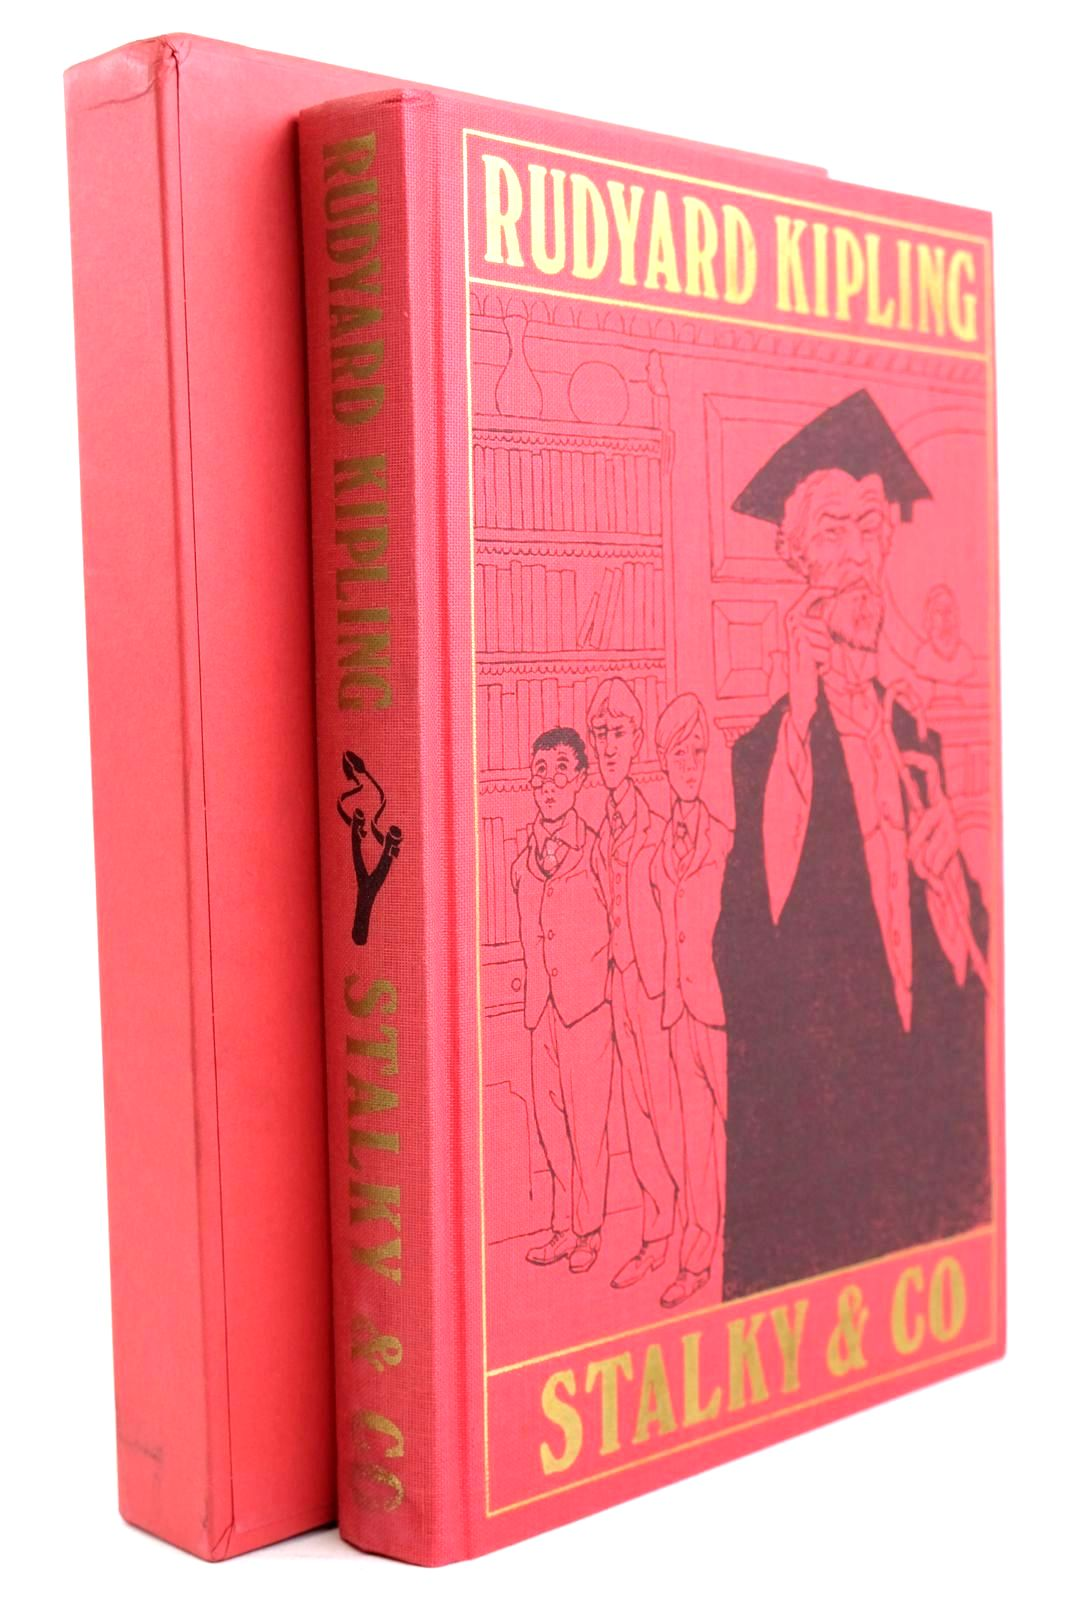 Photo of THE COMPLETE STALKY & CO. written by Kipling, Rudyard illustrated by Eccles, David published by Folio Society (STOCK CODE: 1320533)  for sale by Stella & Rose's Books